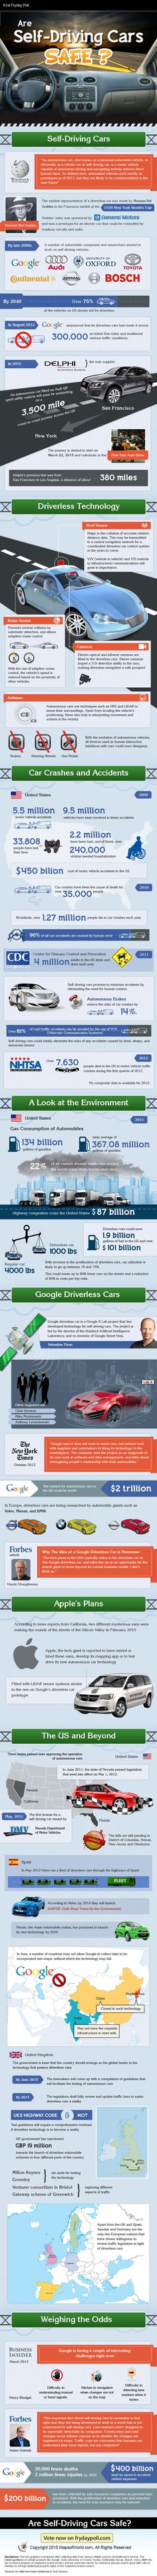 31 Best Futuristic Cars Images On Pinterest F12 Selfdriving Gps Following Car Embedded Systems Learning Are Self Driving Safe